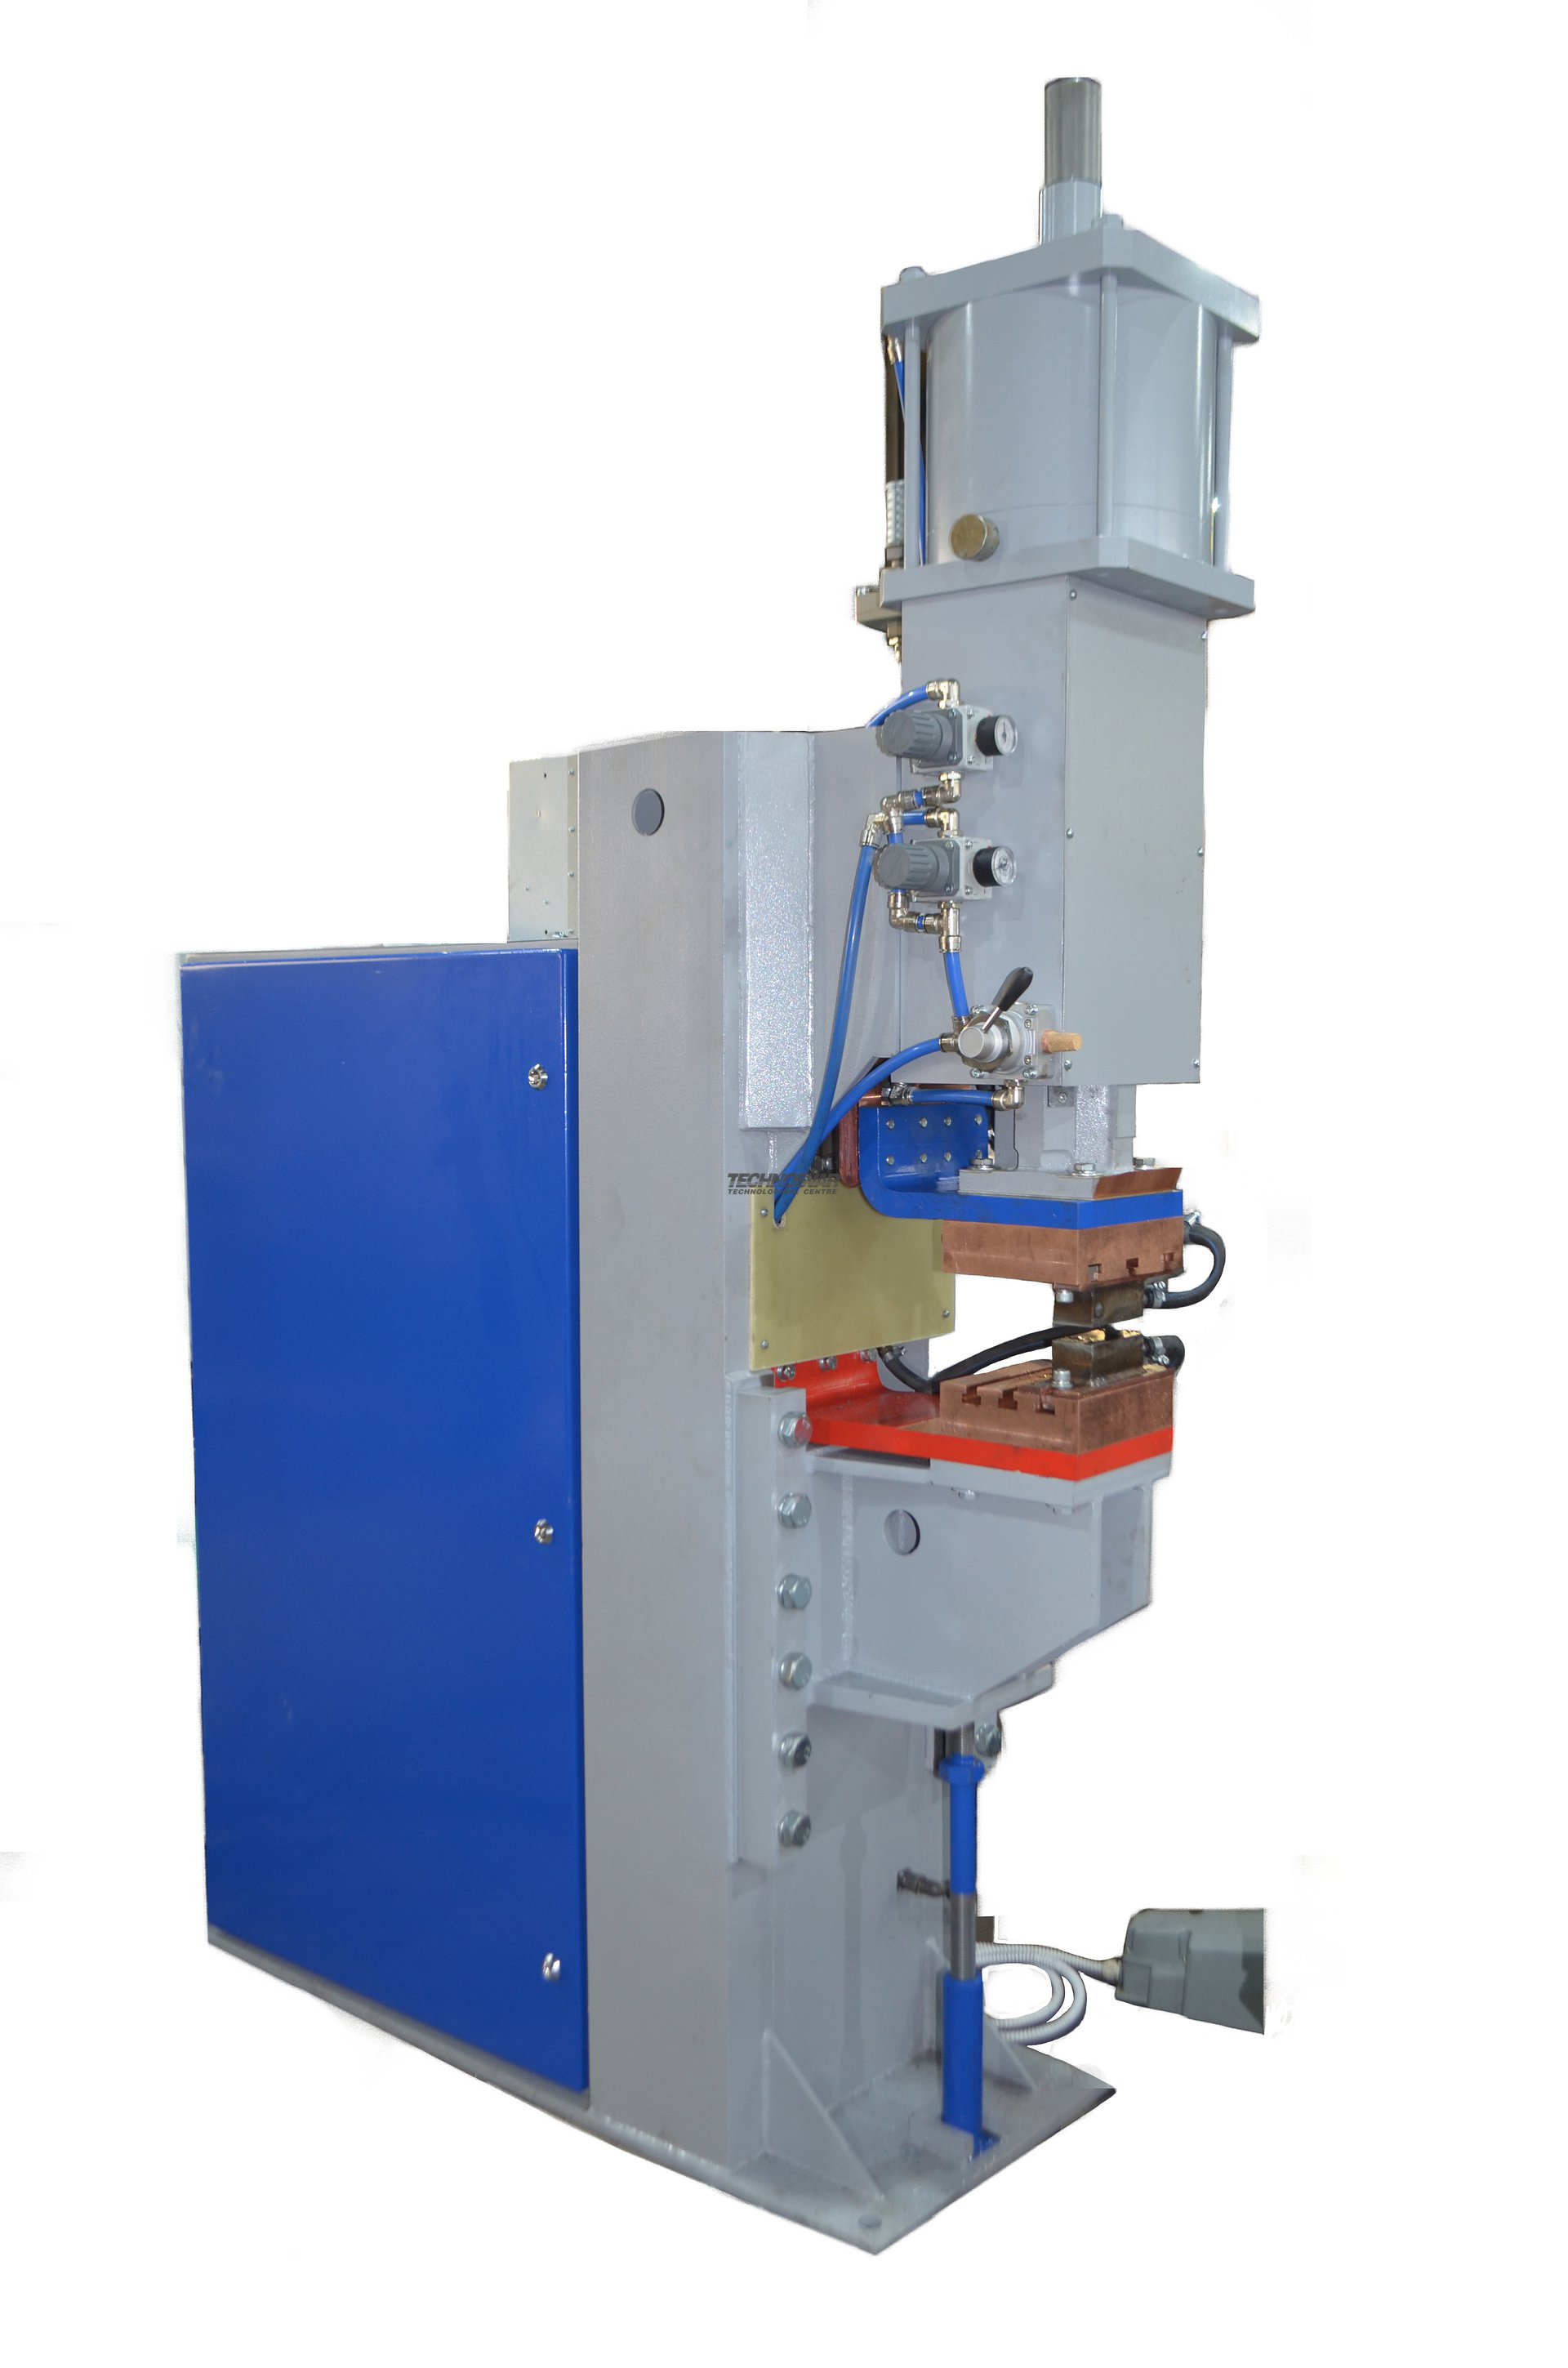 Projection resistance welding machine MR - 70.01